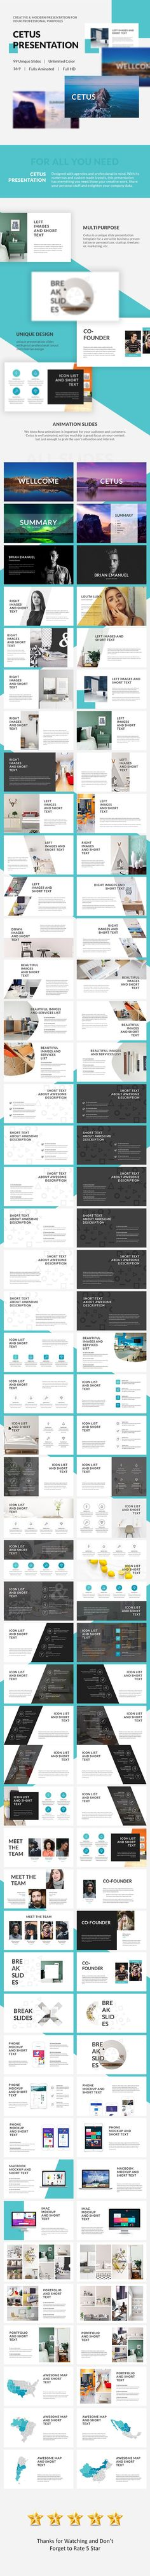 Cetus Powerpoint — Powerpoint PPTX #clean presentation #animated presentation • Available here ➝ https://graphicriver.net/item/cetus-powerpoint/20574348?ref=pxcr